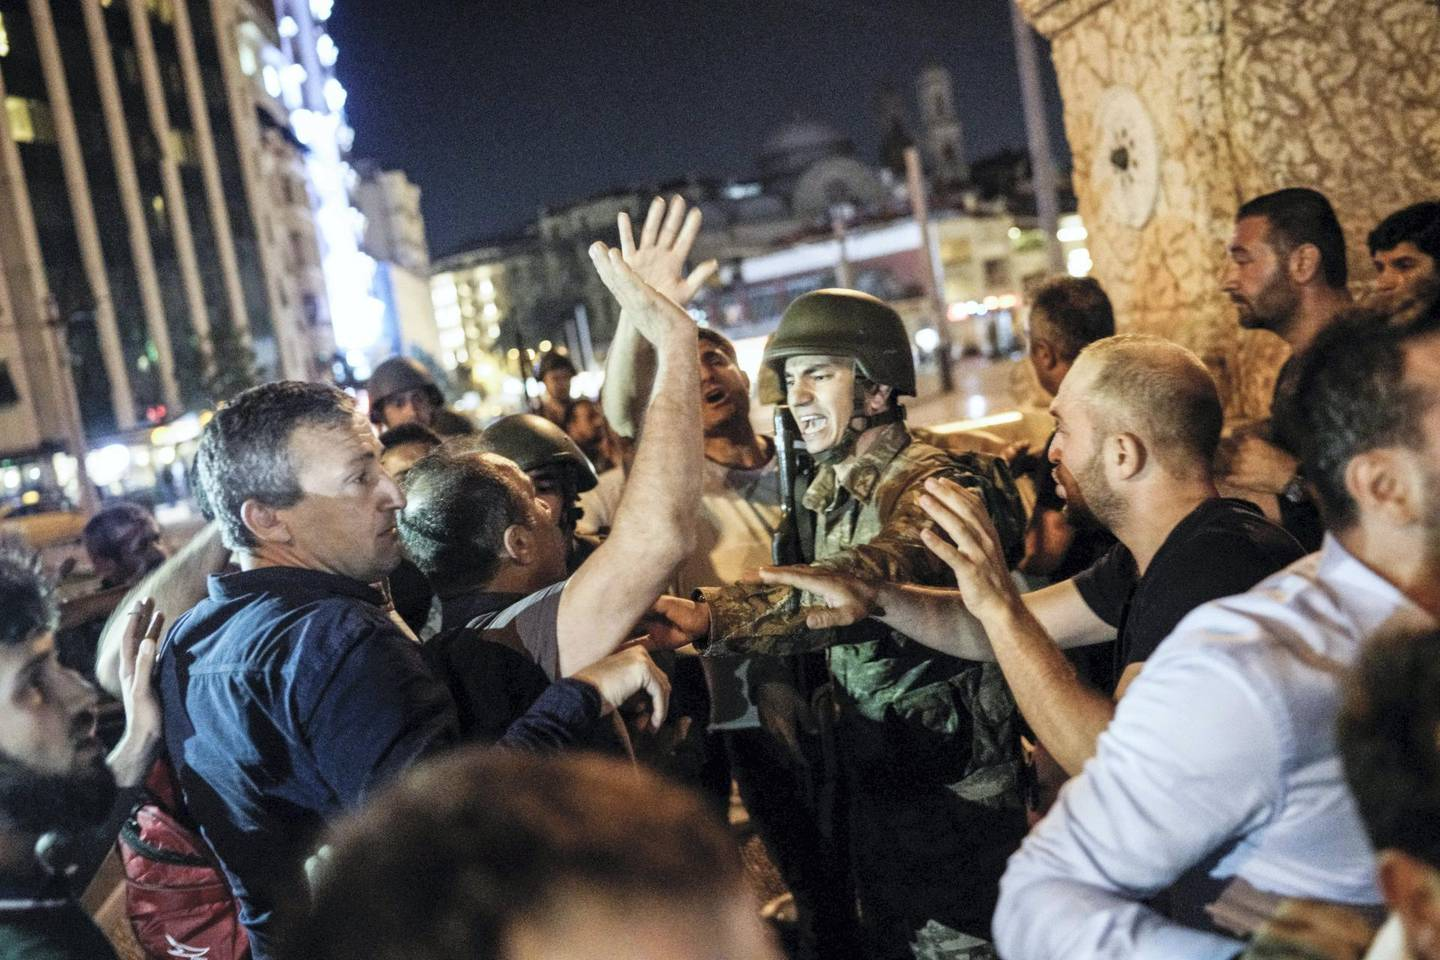 People react towards a Turkish solder at Taksim square in Istanbul on July 16, 2016.  Turkish military forces on July 16 opened fire on crowds gathered in Istanbul following a coup attempt, causing casualties, an AFP photographer said. The soldiers opened fire on grounds around the first bridge across the Bosphorus dividing Europe and Asia, said the photographer, who saw wounded people being taken to ambulances.   / AFP PHOTO / HALIT ONUR SANDAL